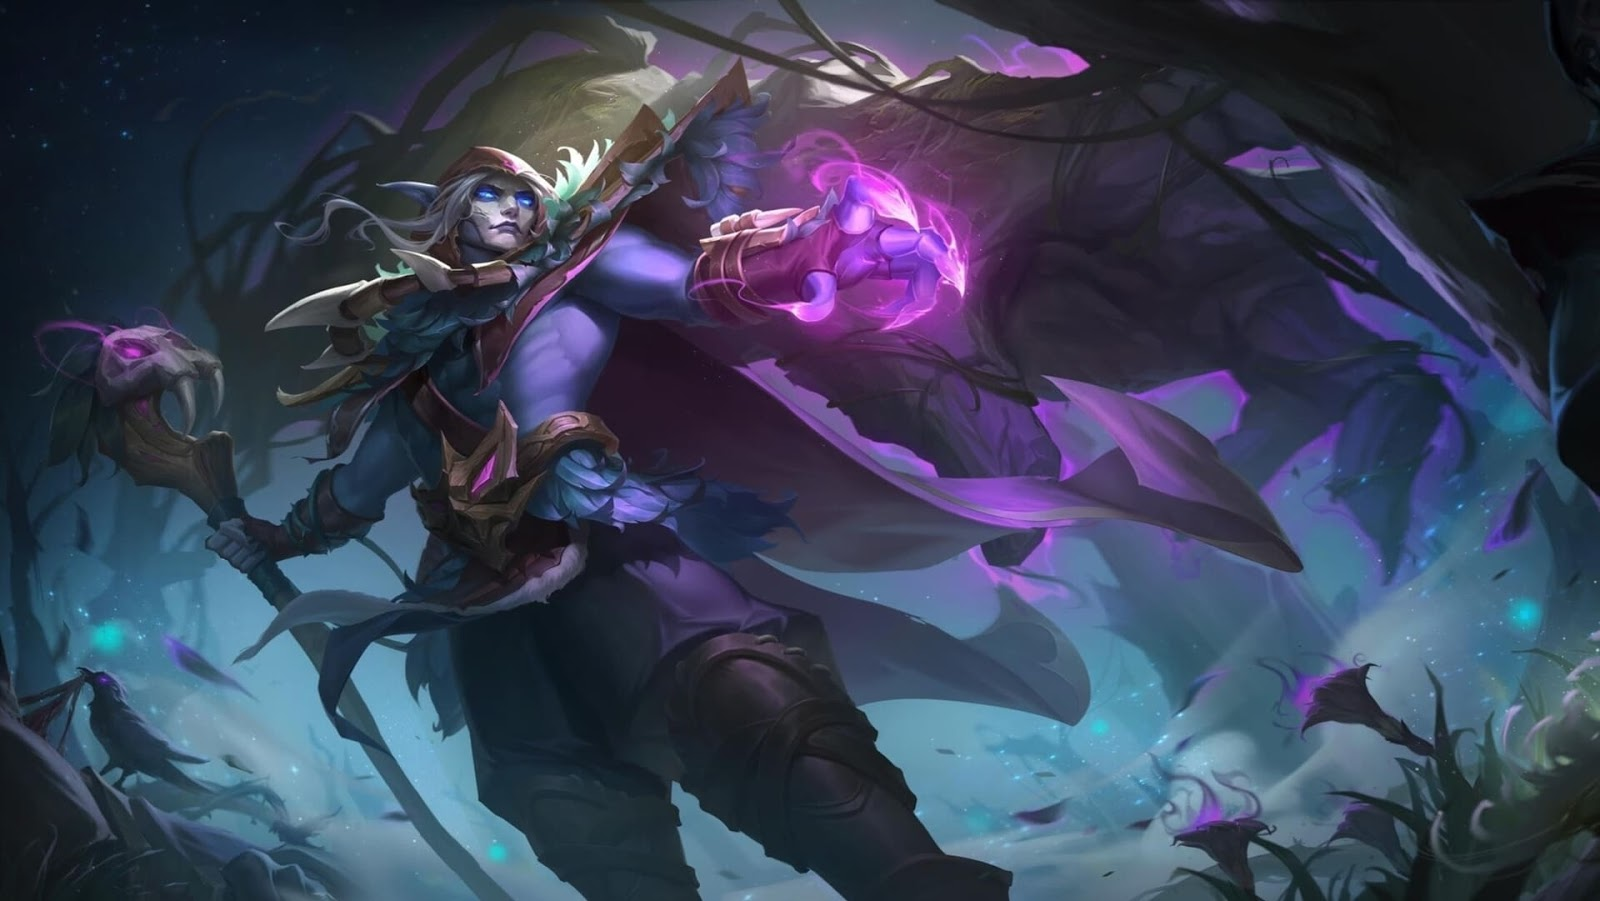 Wallpaper Faramis Ivy Feathers Skin Mobile Legends HD for PC